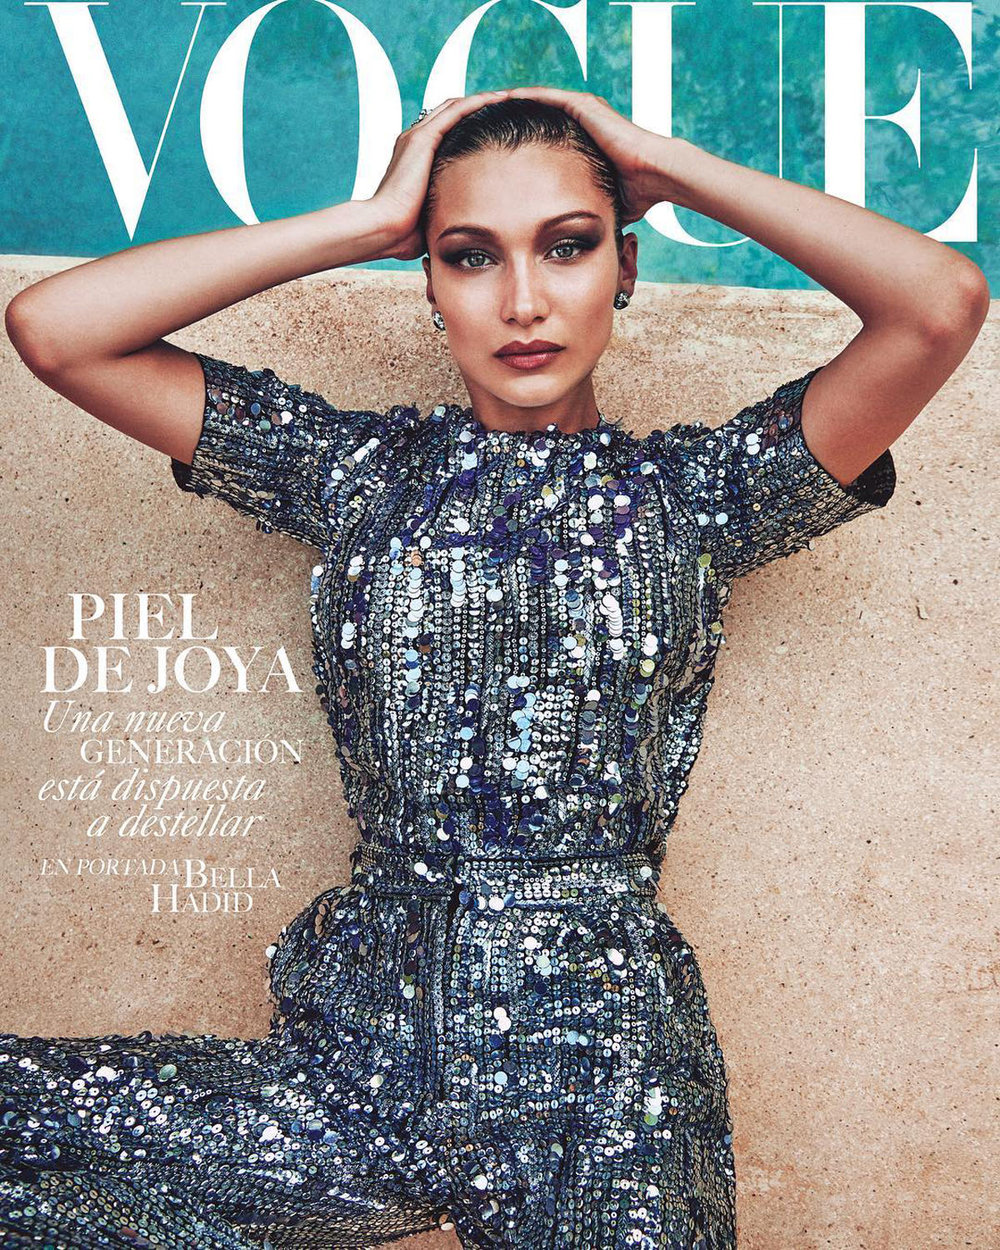 vogue-mexico-july-2018_04.jpg